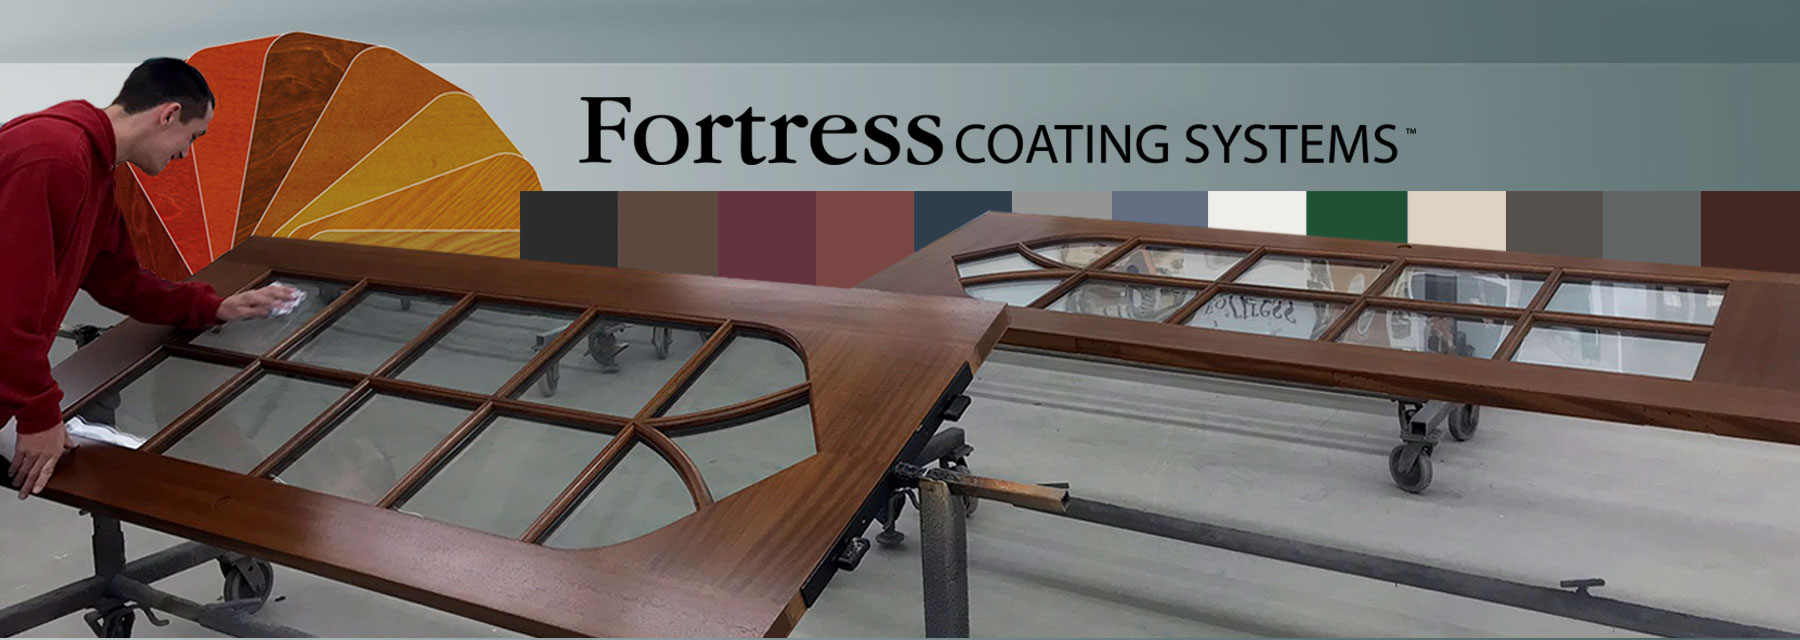 Fortress Coating Systems